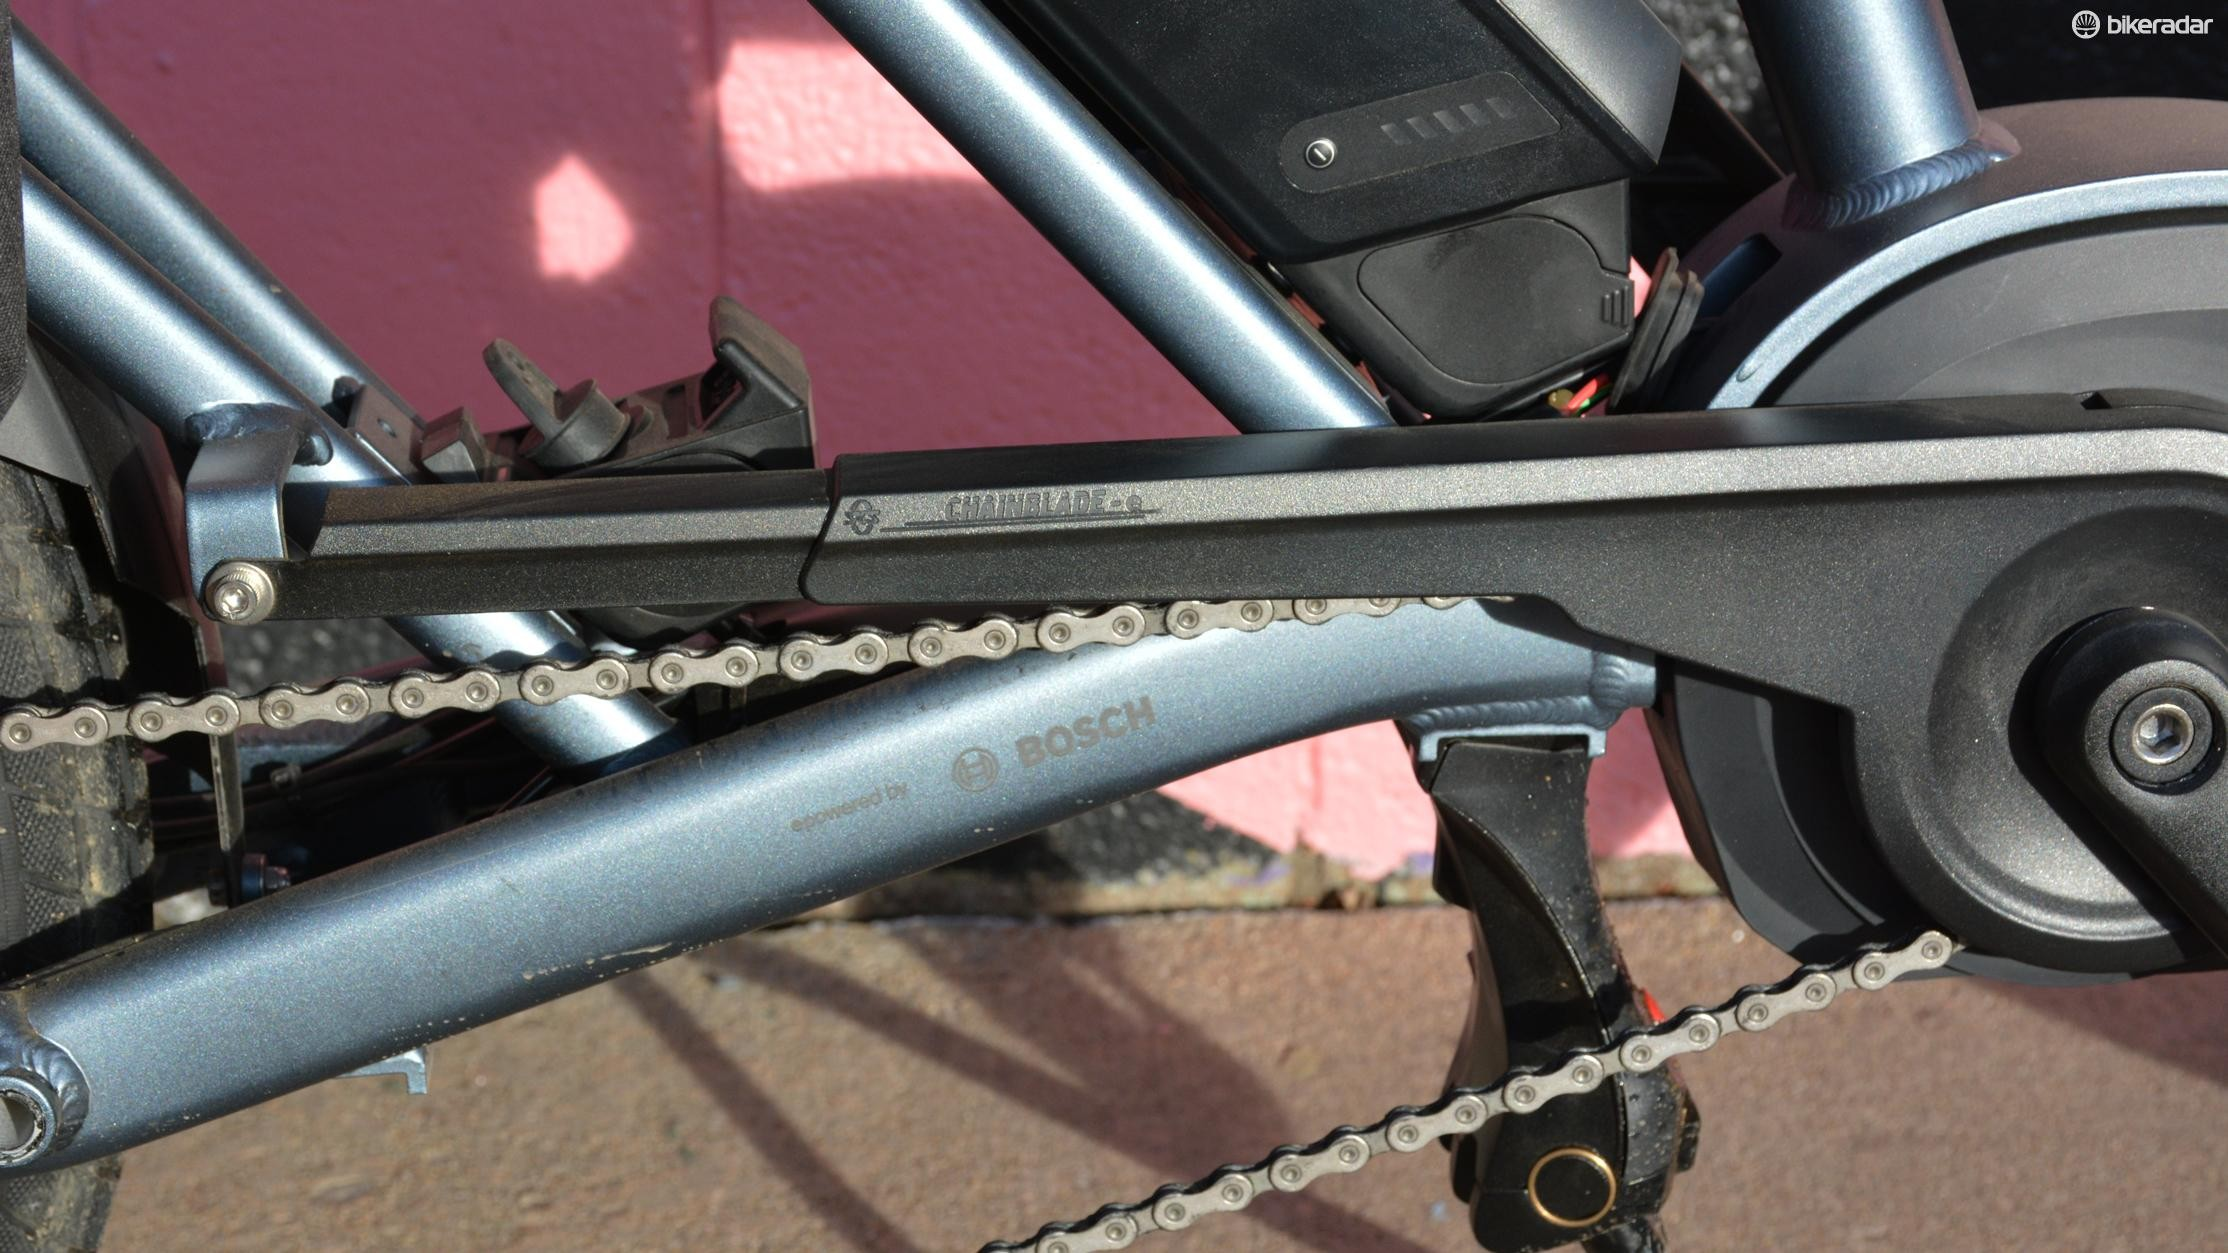 Tern seemingly thought of everything on the GSD, the chainguard is one small example